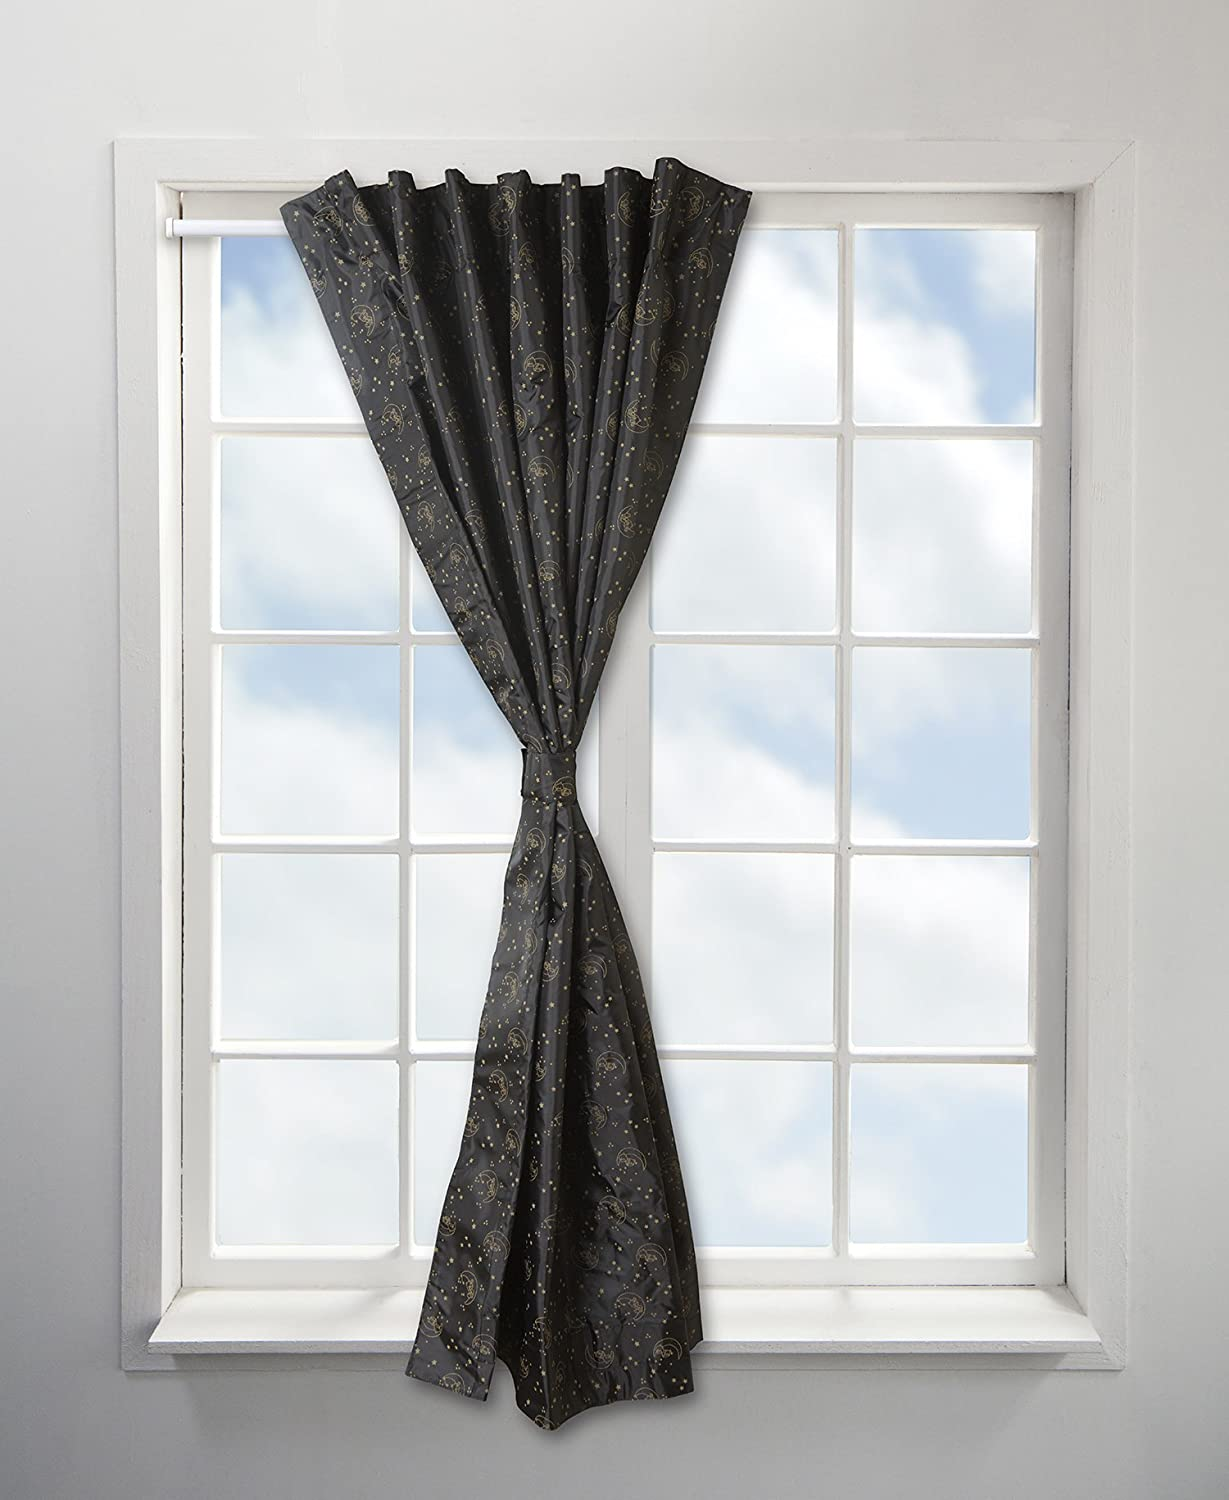 tension tips blind unique looks roman of best window so rods ideas wand curtains blinds faux rod parts easy some hook and shade fabric repair